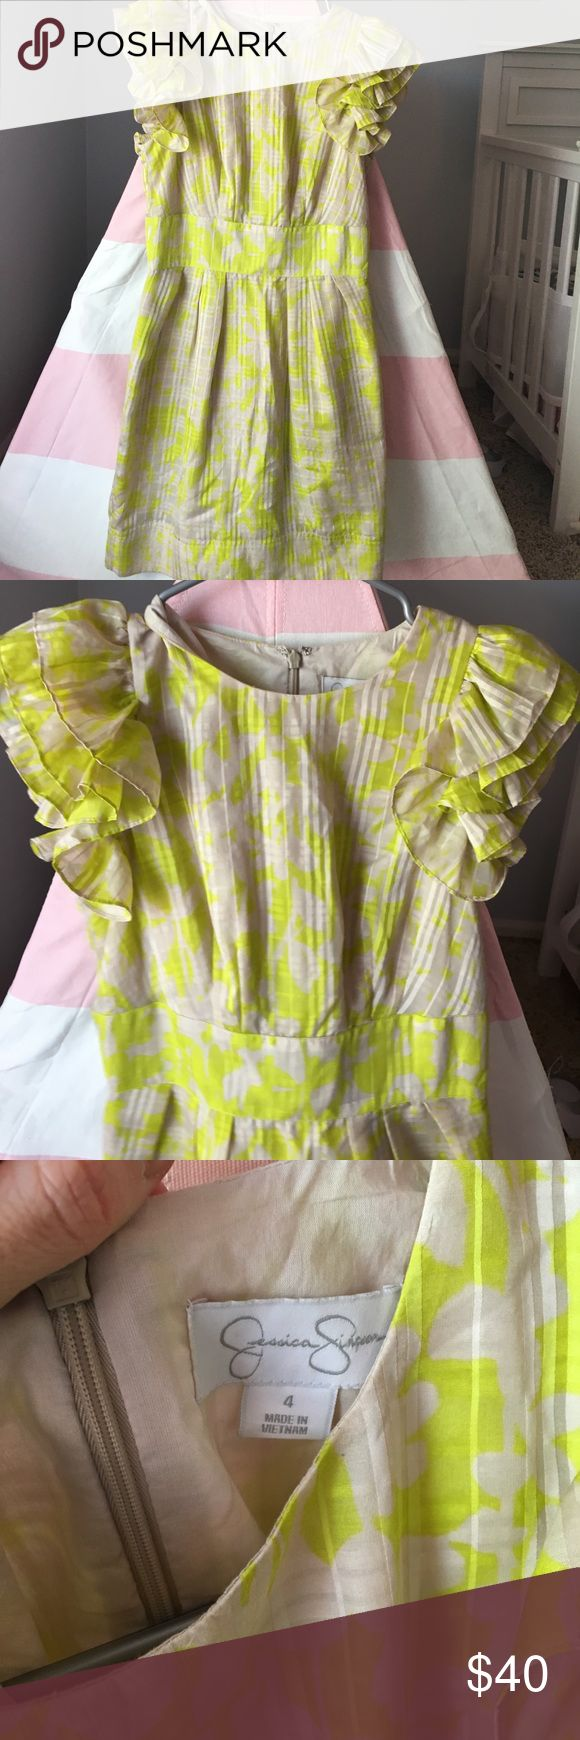 Jessica Simpson Yellow and grey party dress So cute. The print & ruffled sleeves make this dress. I've received so many compliments wearing this. Jessica Simpson Dresses Mini